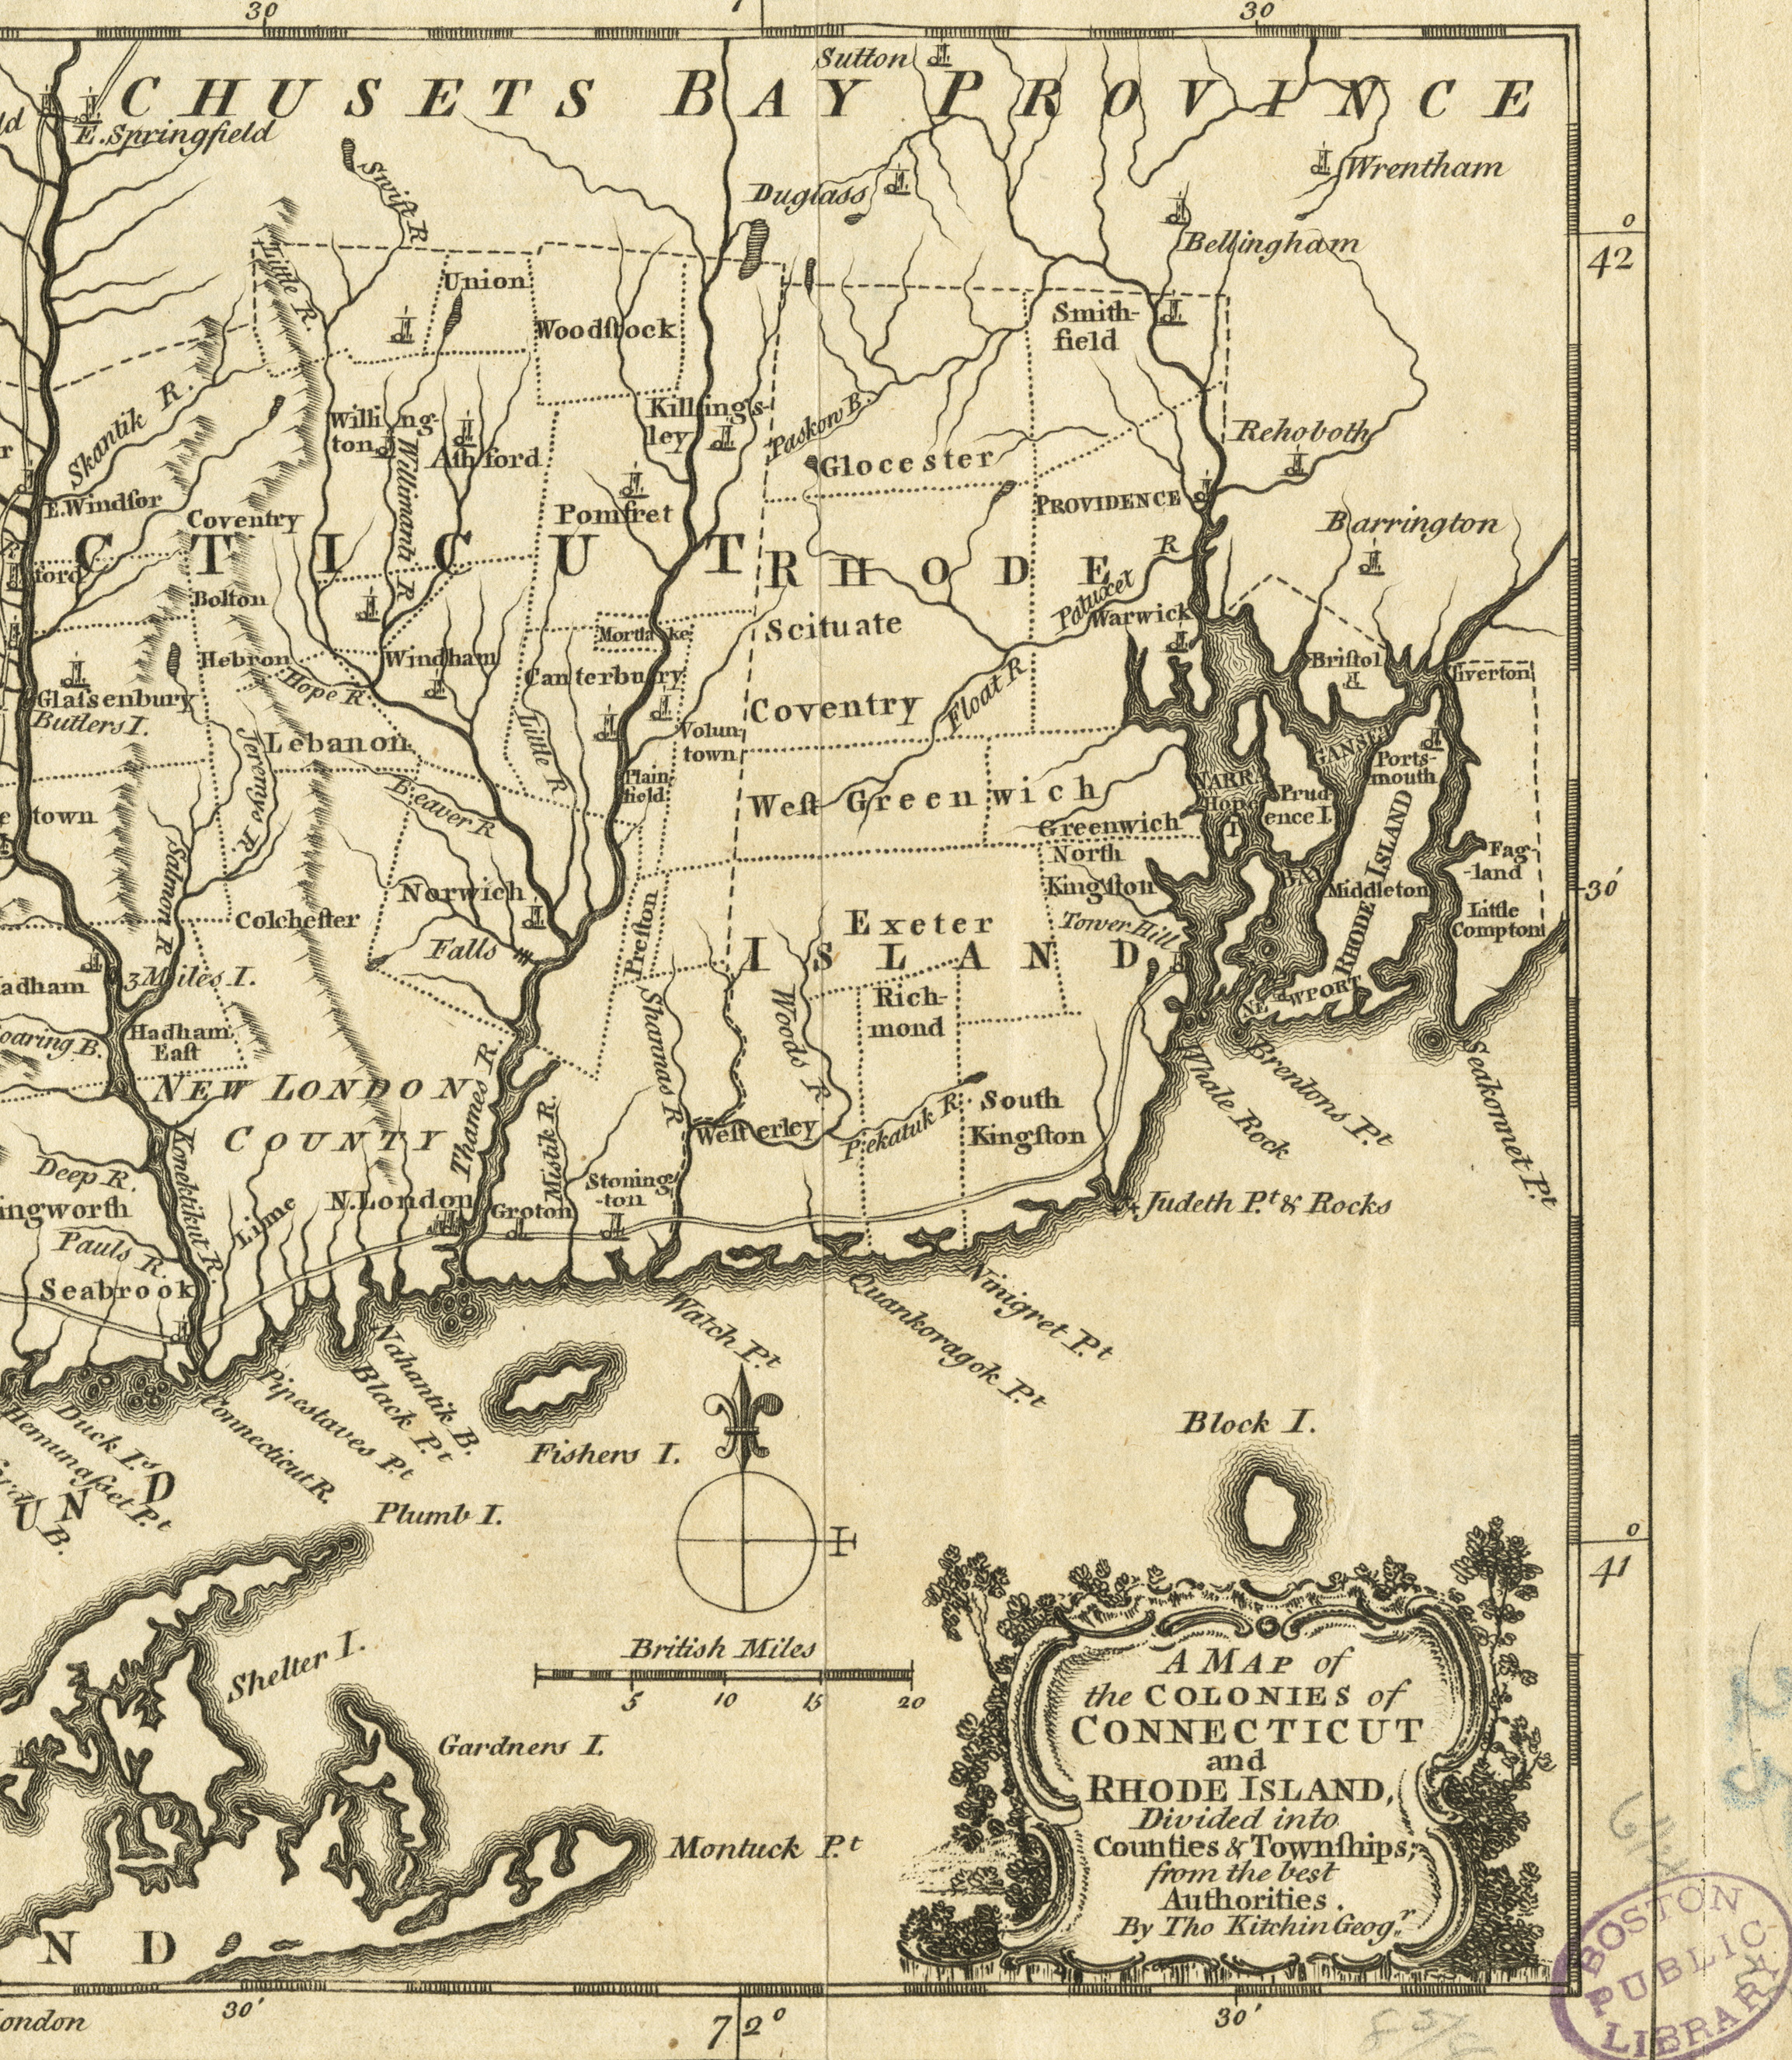 Friend of Government or Friend of Country: The Revolutionary War Journey of Thomas Banister  from Rhode Island to Long Island